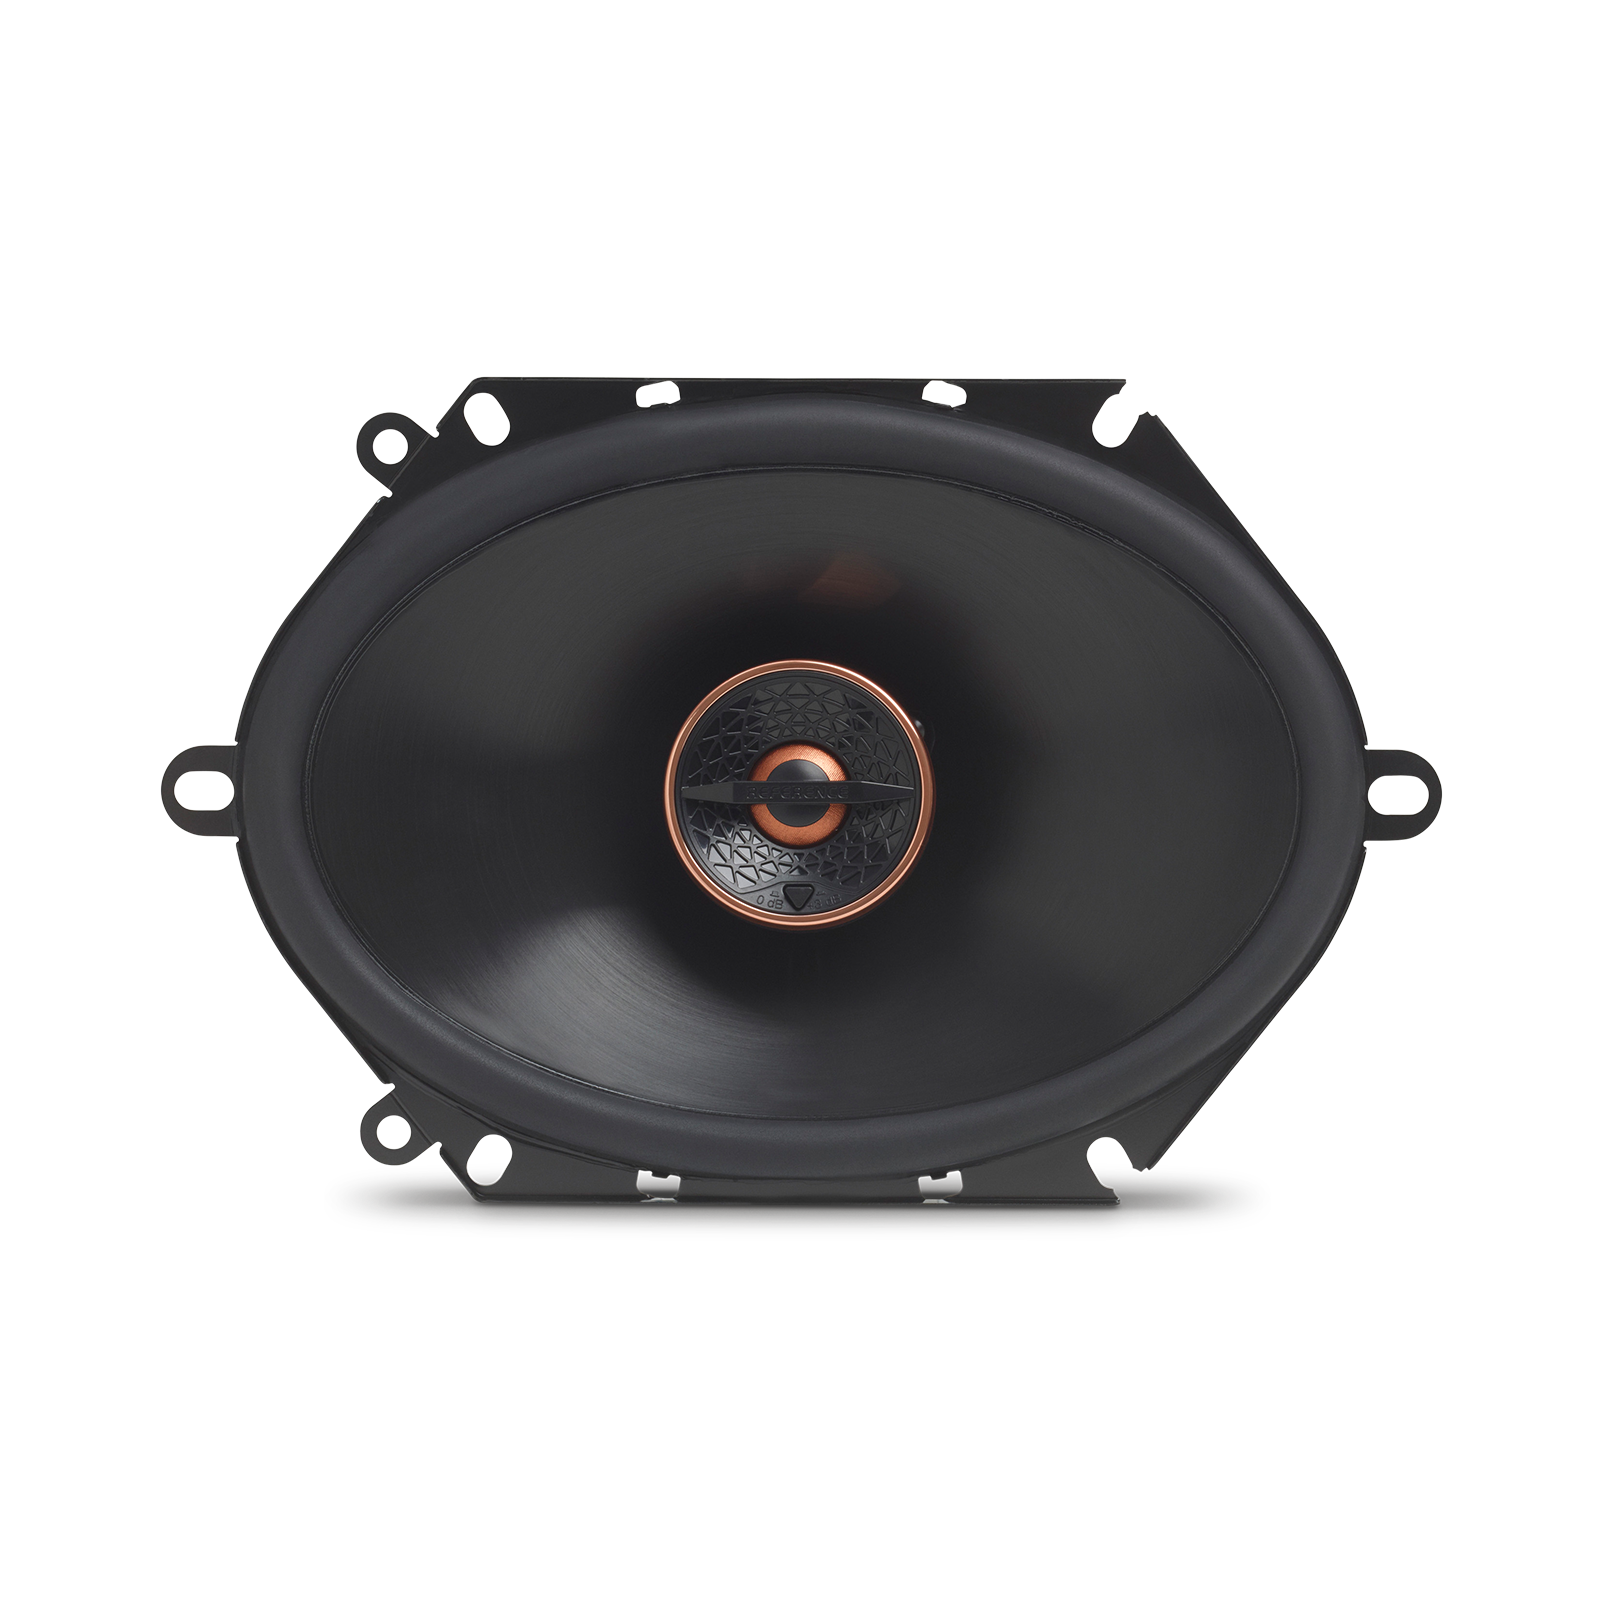 "Reference 8632cfx - Black - 6"" x 8"" (152mm x 203mm) coaxial car speaker, 180W - Front"